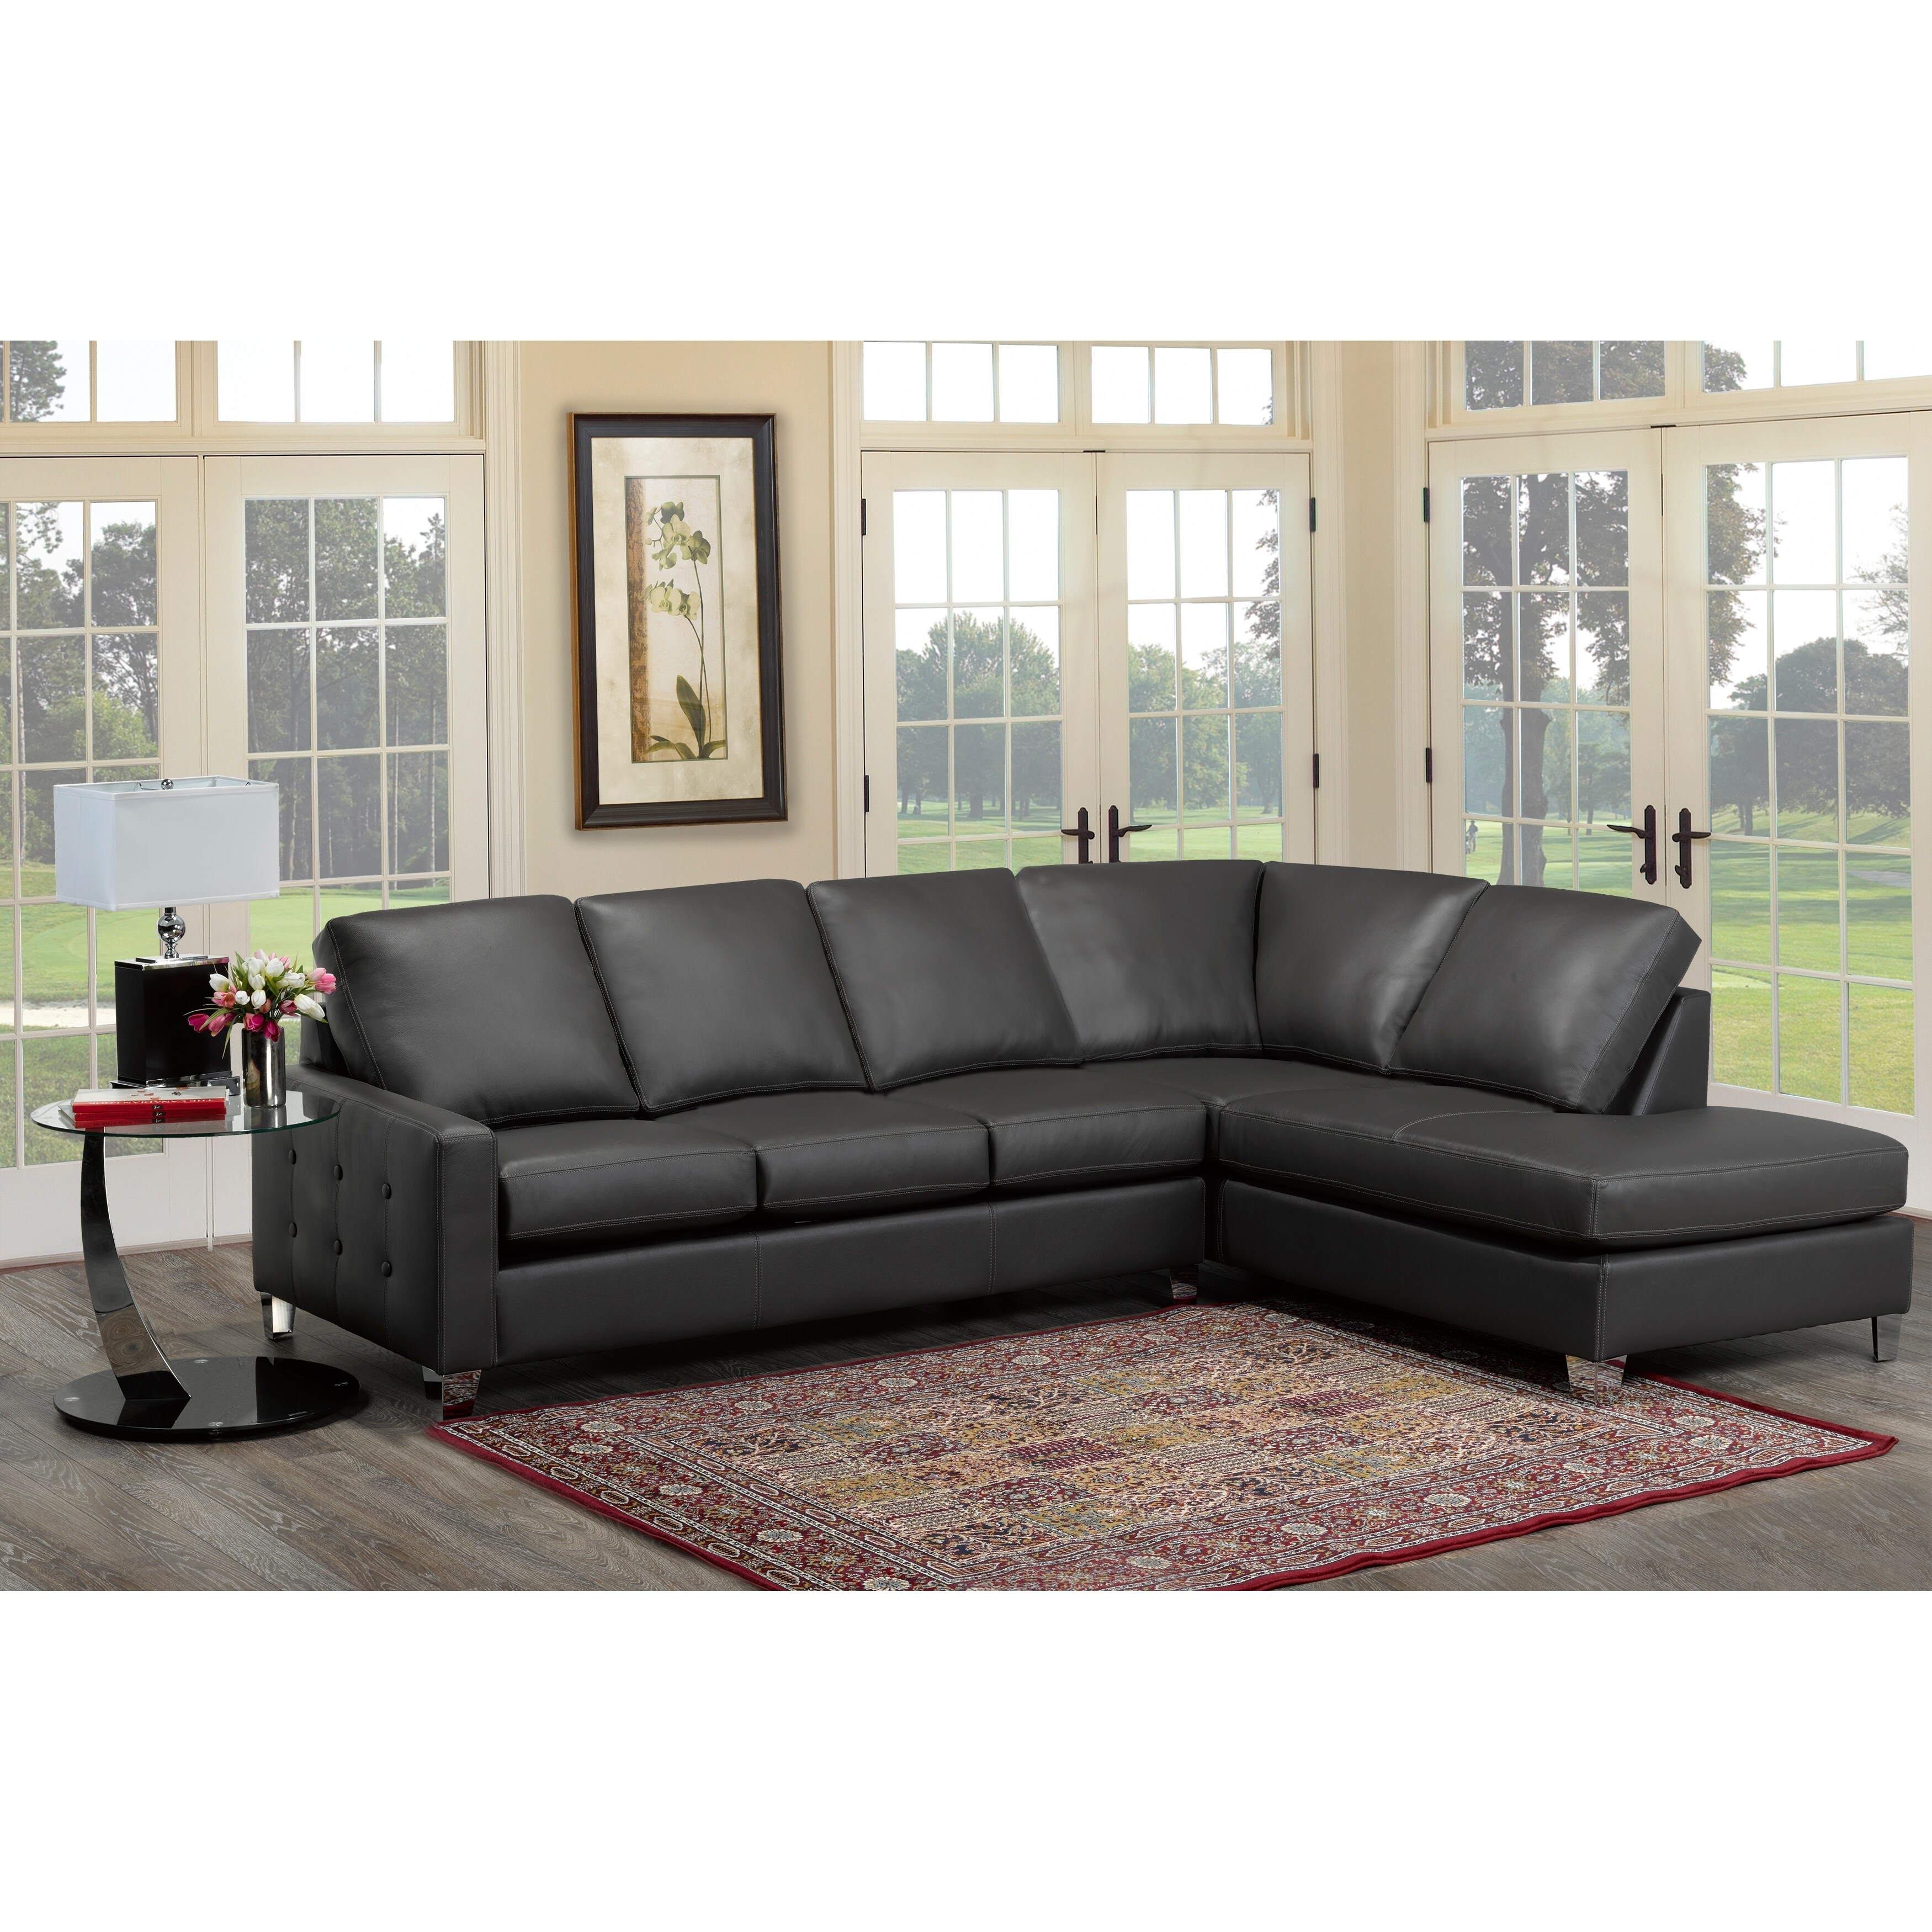 cy dark grey top grain italian leather tufted sectional sofa